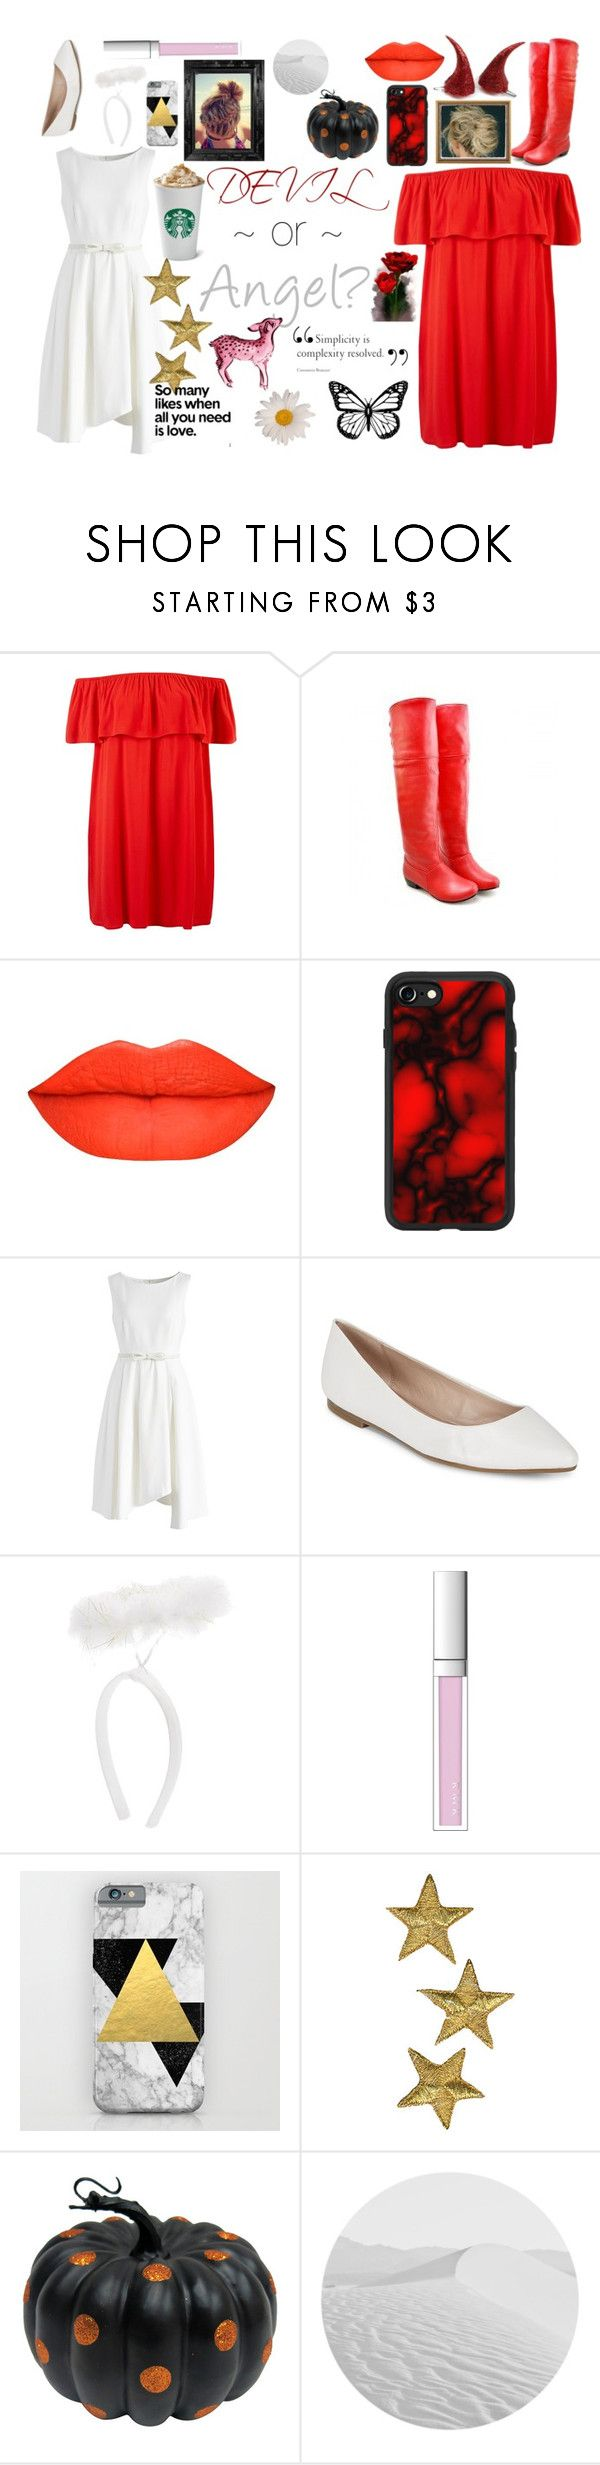 """Devil or Angel?"" by fawnspot ❤ liked on Polyvore featuring Casetify, Chicwish, BCBGeneration, RMK and Linda Horn"